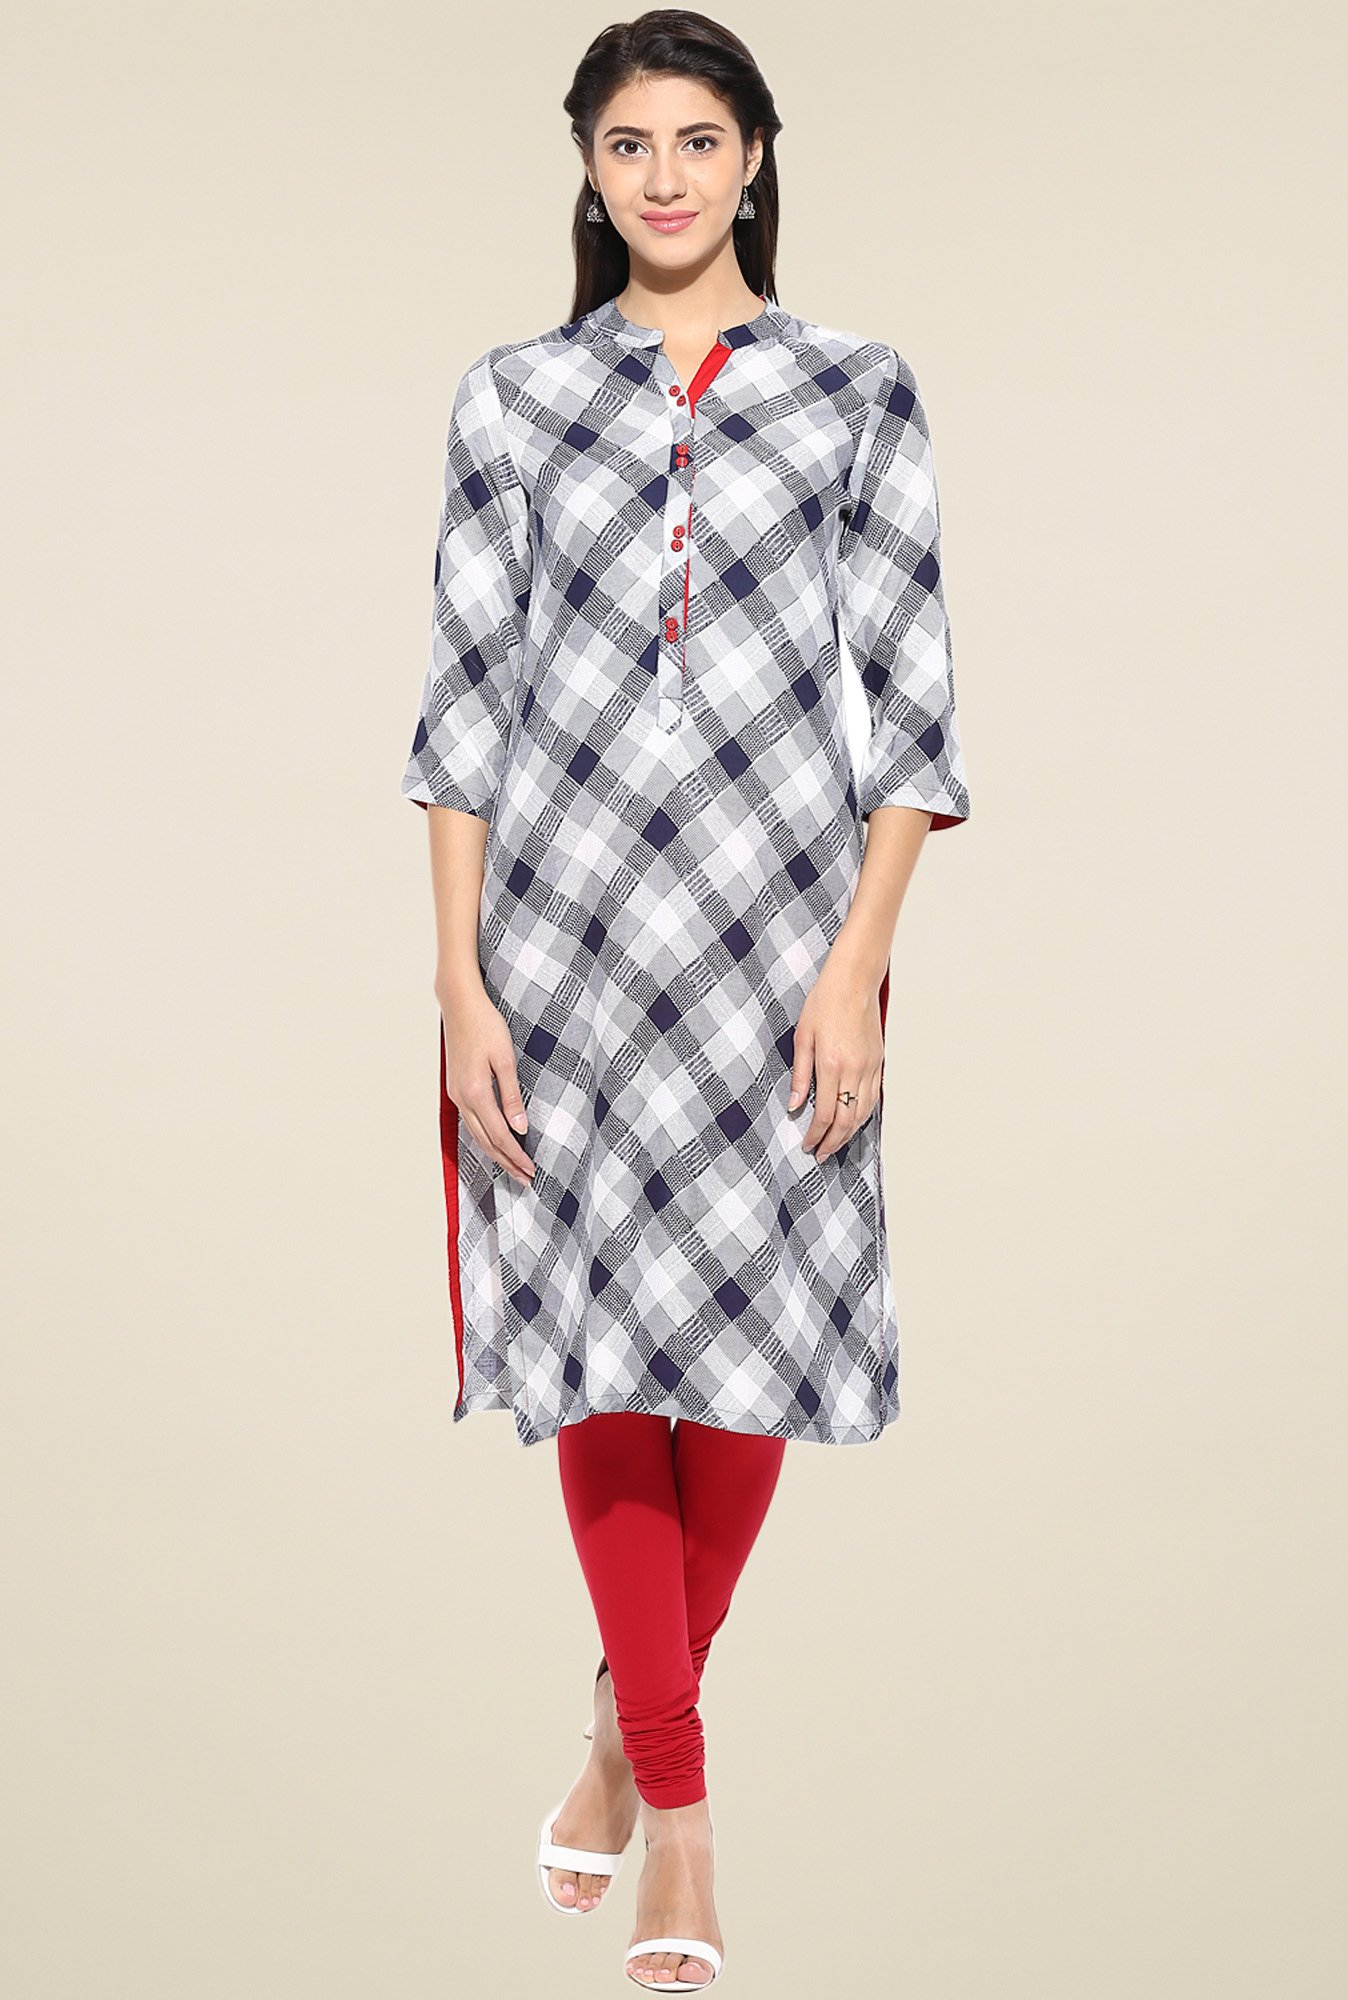 Evam Blue Rayon Straight Long Kurta